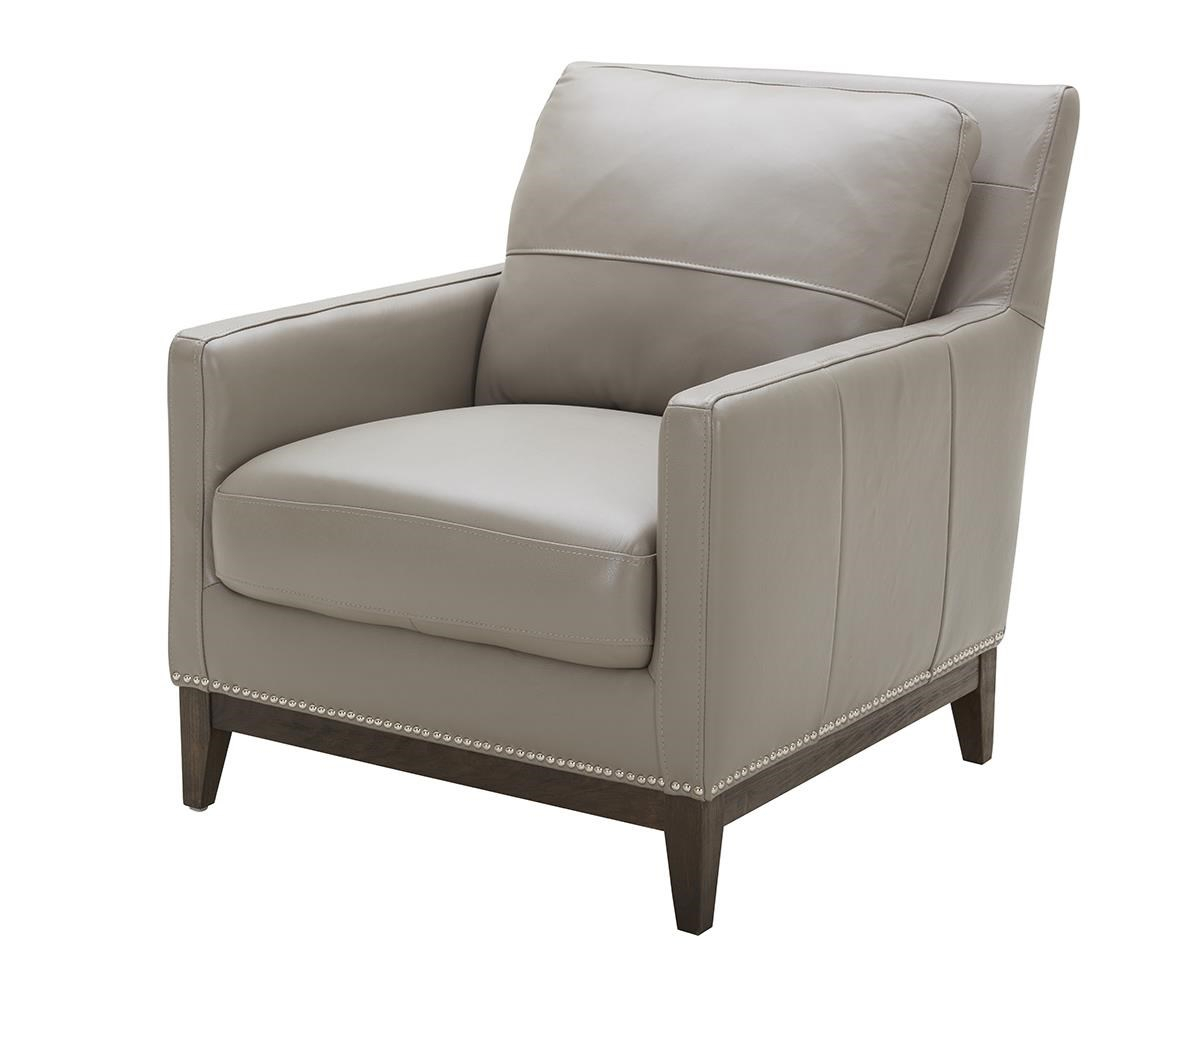 Urban Evolution Grandin Tufted Leather Chair | Belfort Furniture For Grandin Leather Sofa Chairs (View 3 of 25)